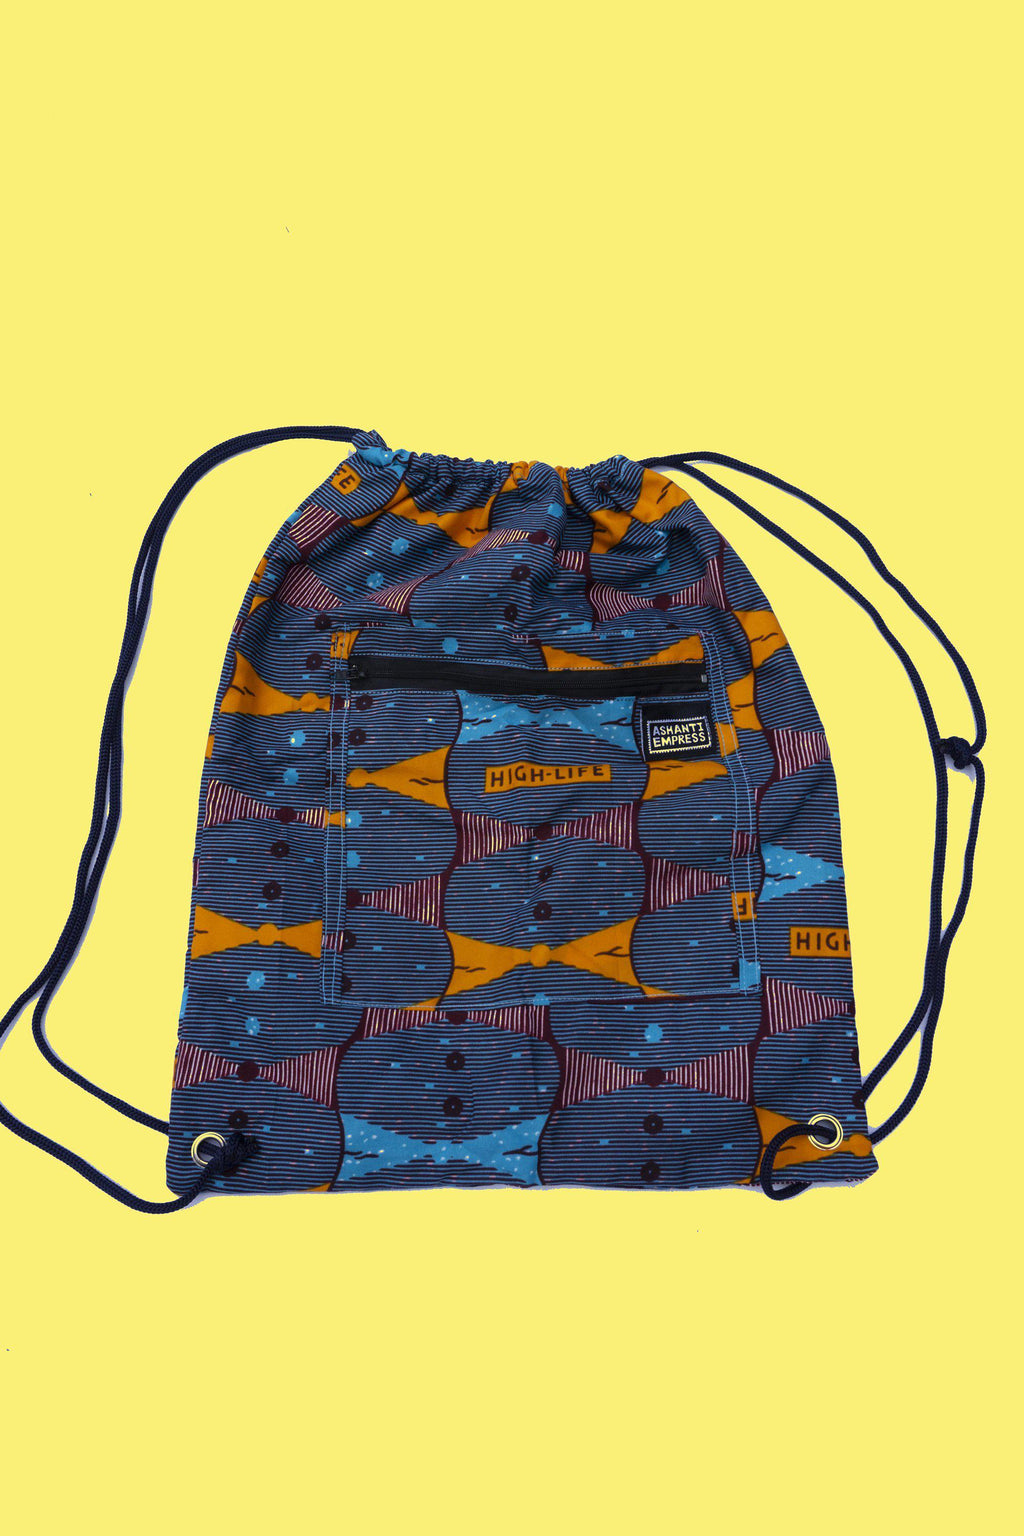 Highlife Drawstring Bag / African Print Drawstring Bag / Colourful Gym Bag / Ankara Backpack / Childrens Bag / Festival Bag